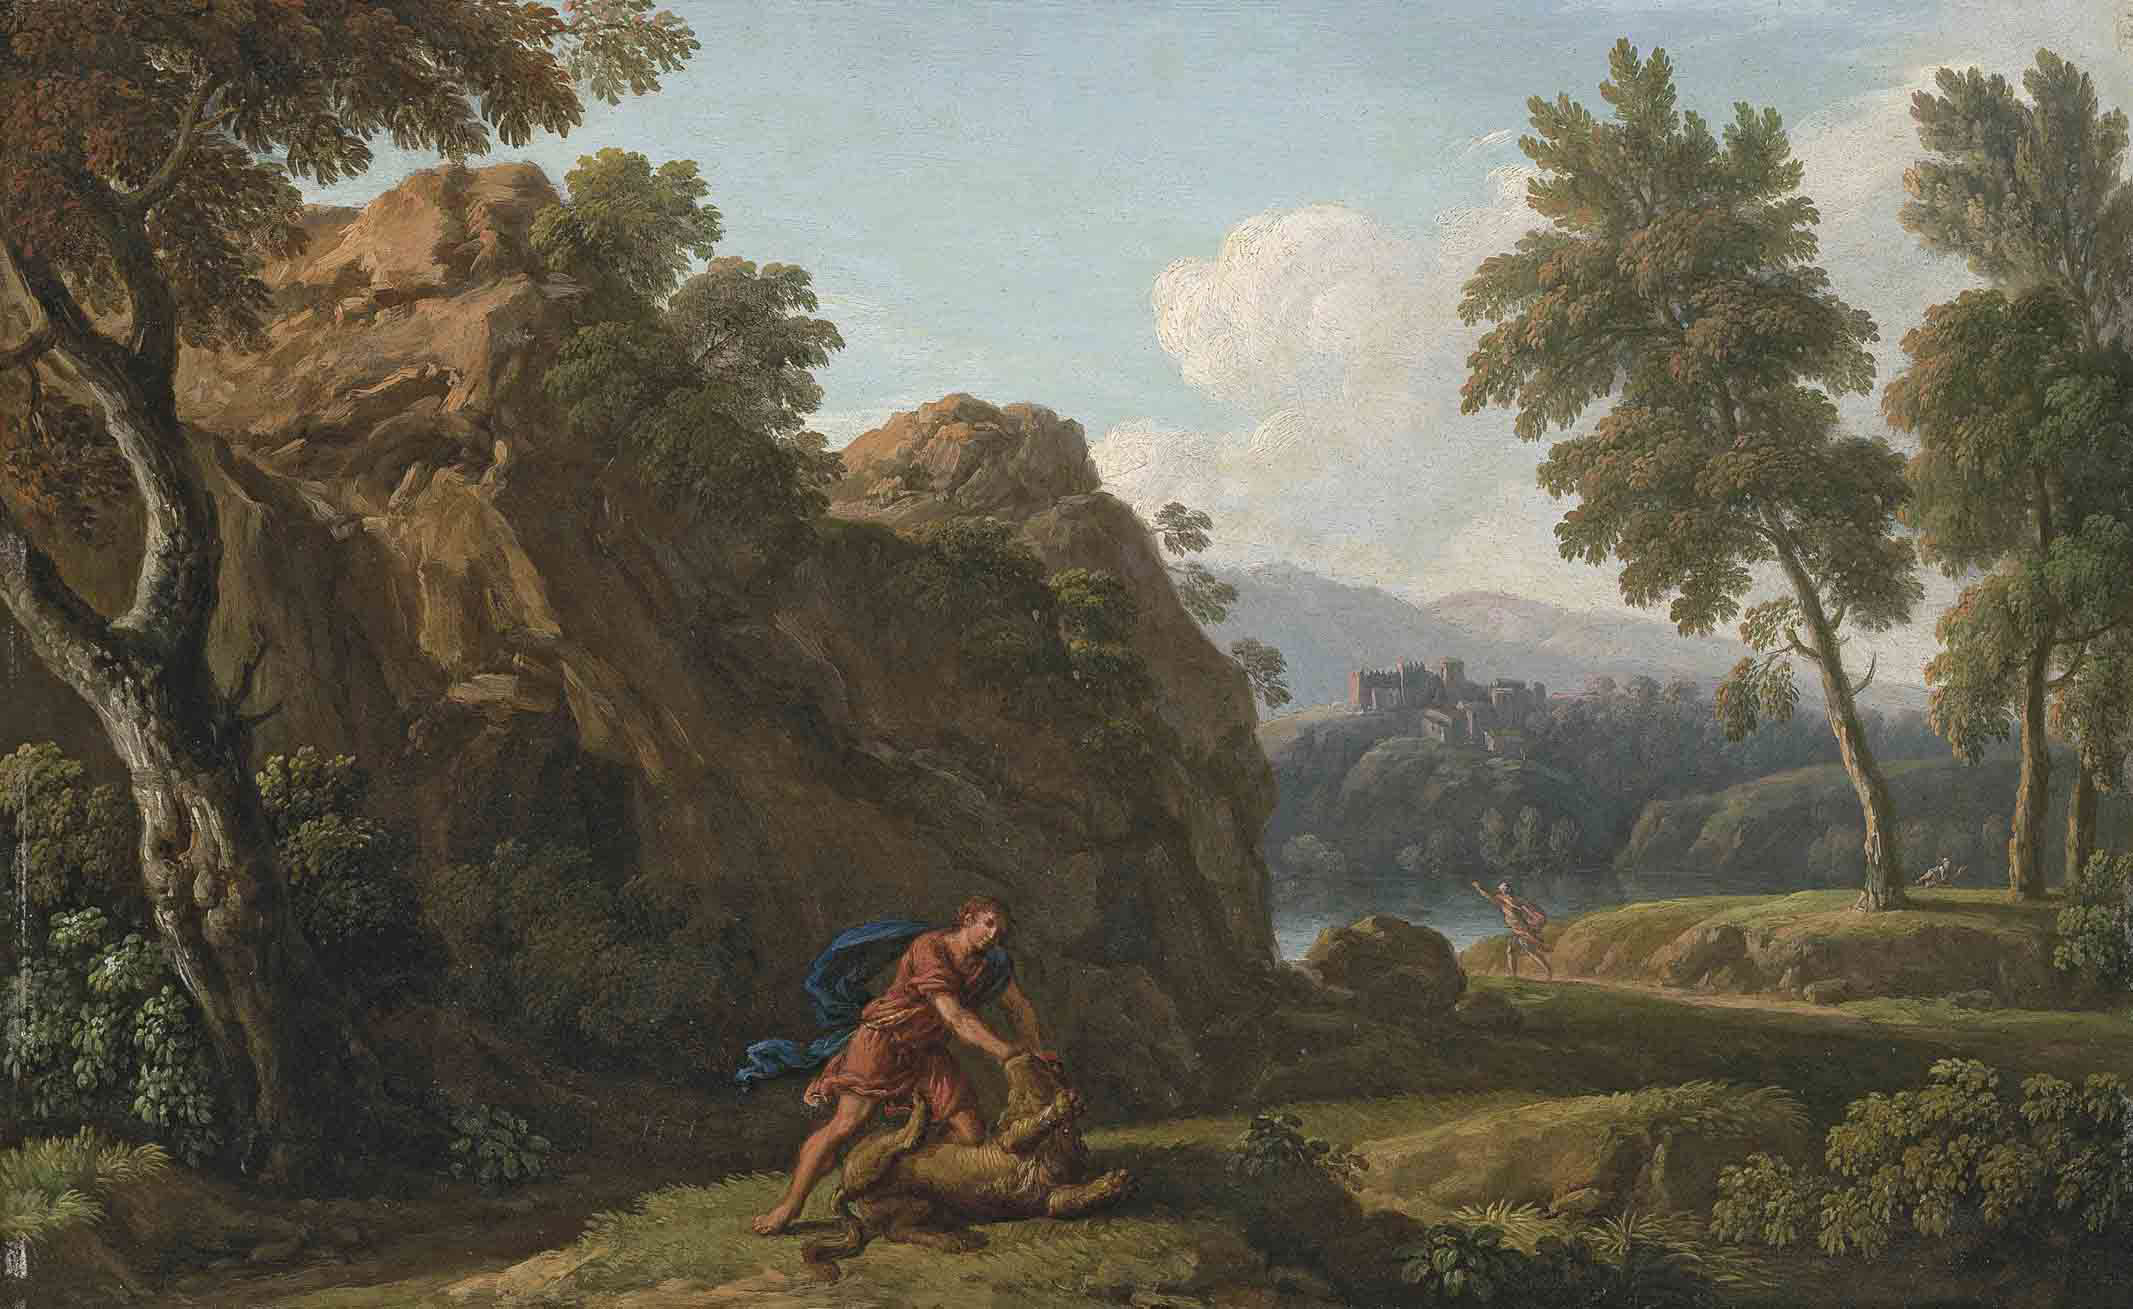 A rocky, river landscape, with Hercules and the Nemean Lion